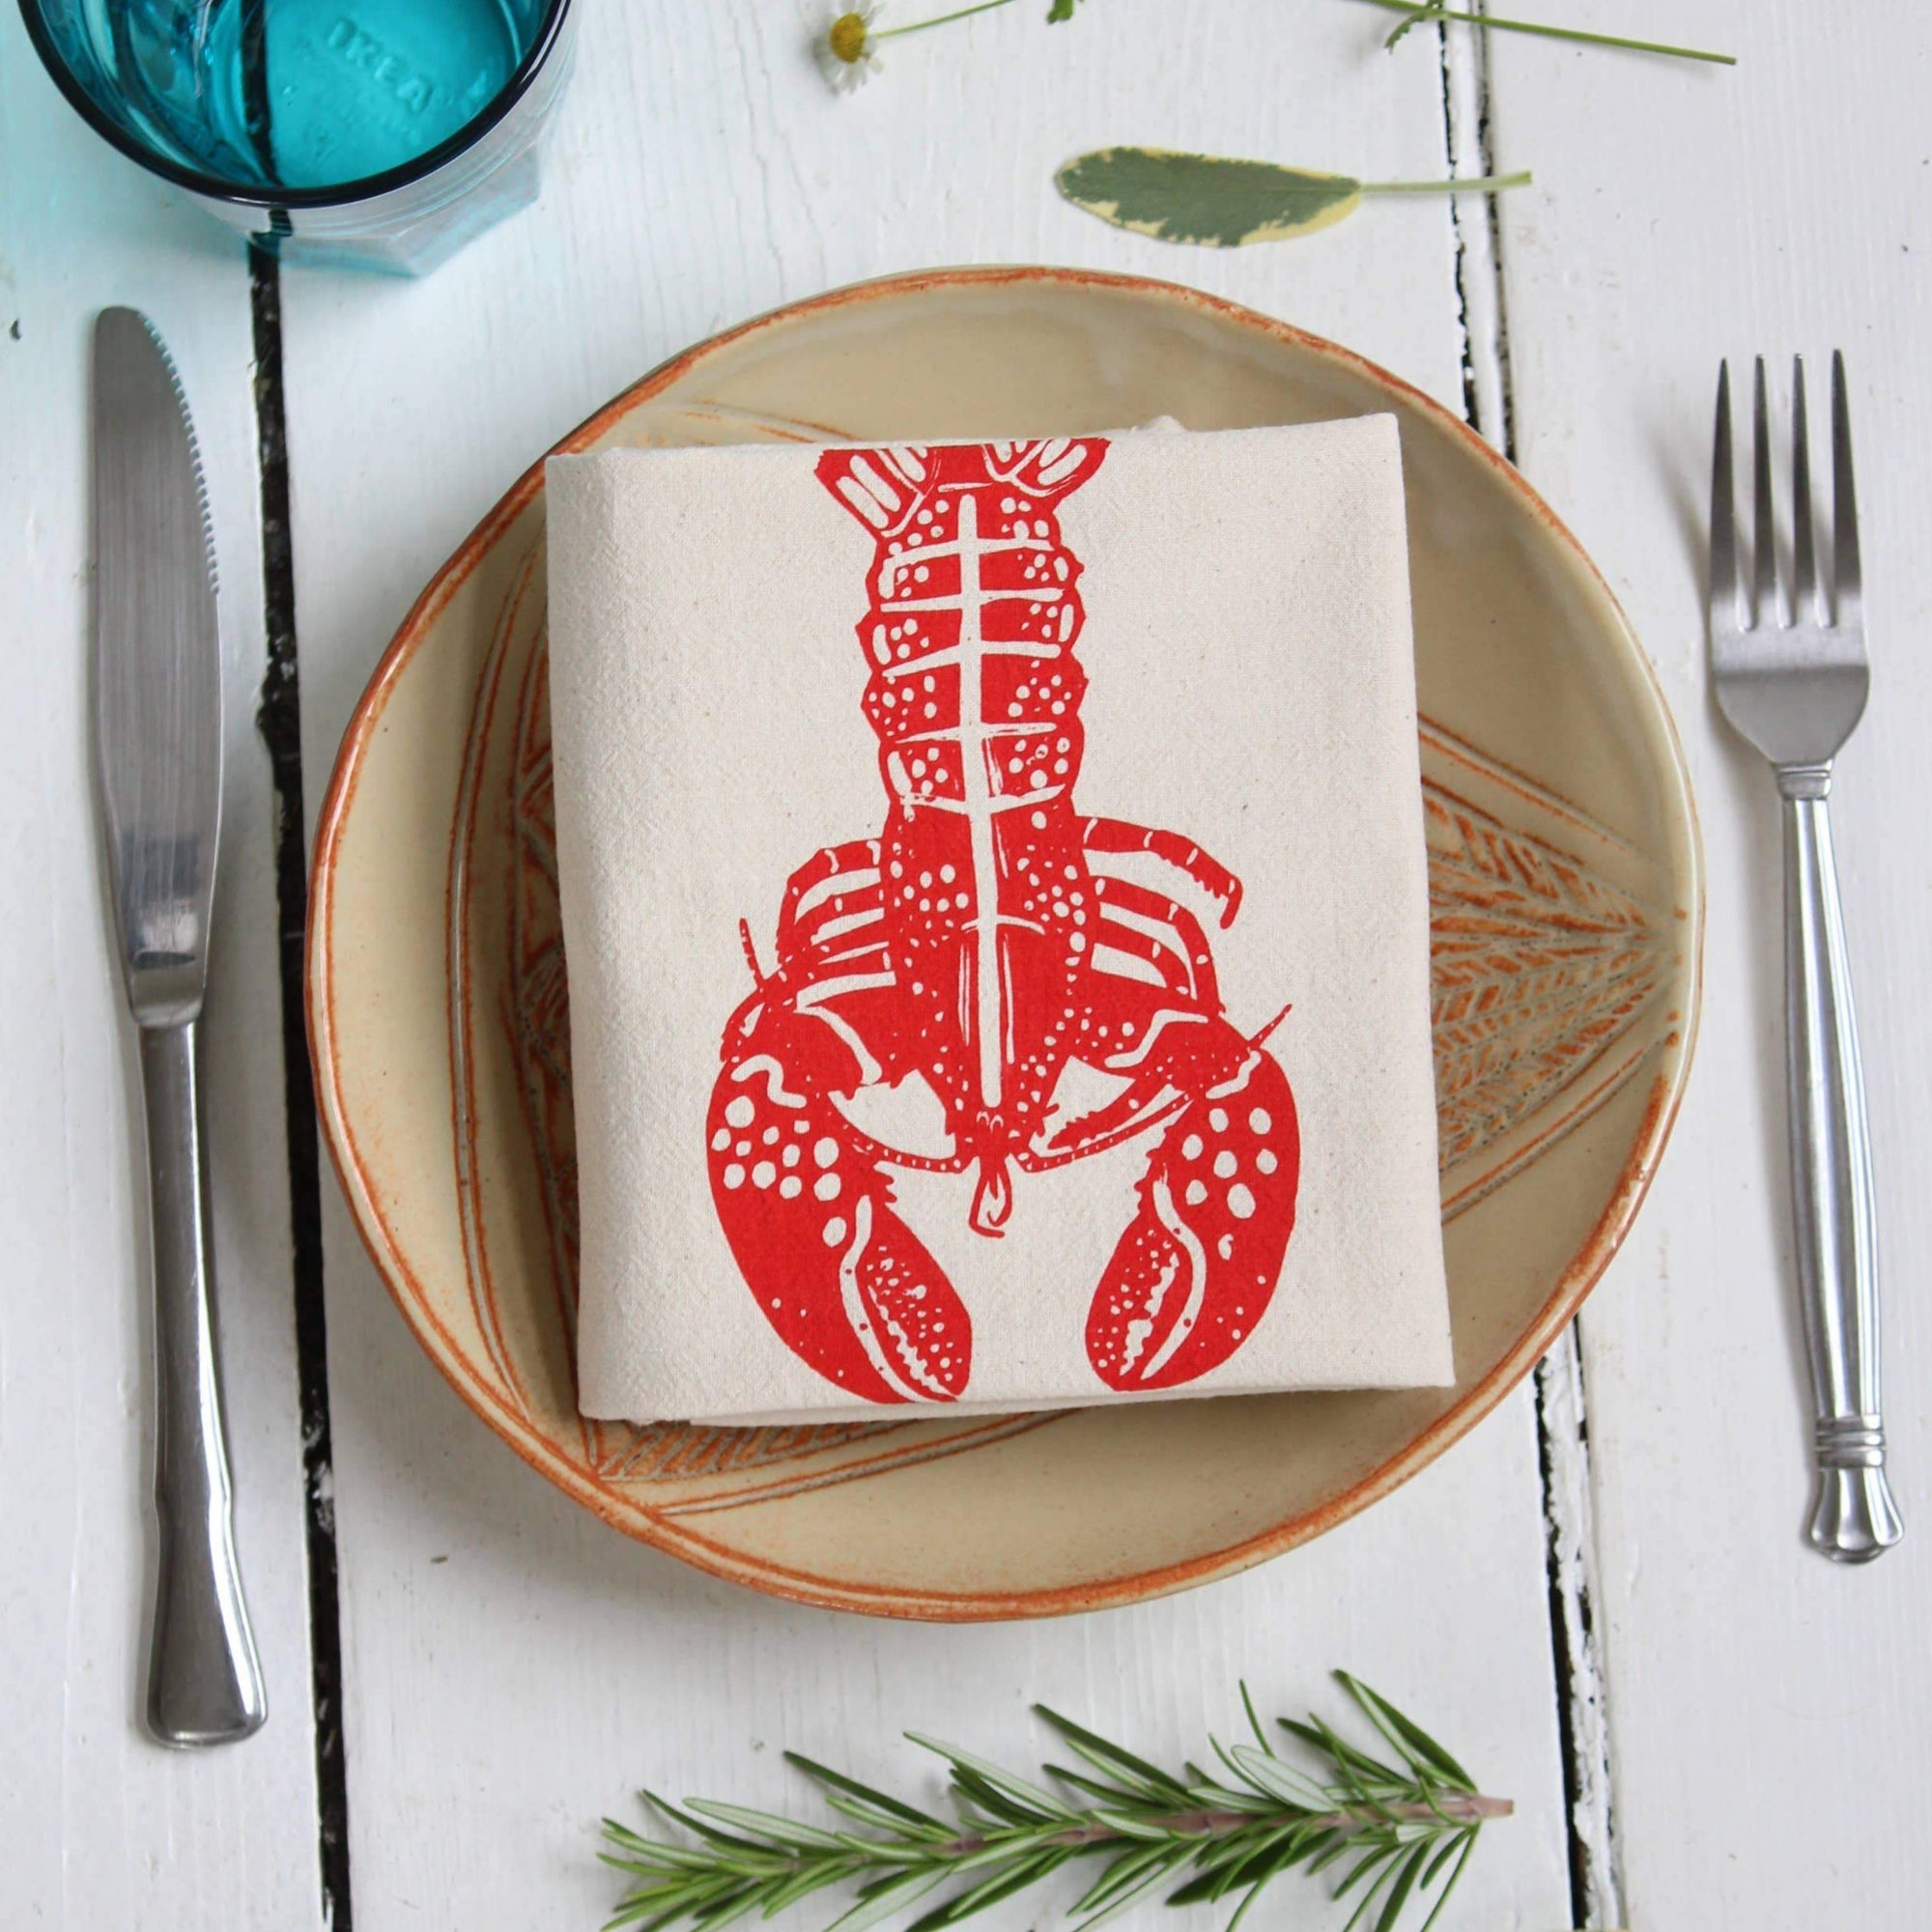 Organic Lobster Napkins s/4